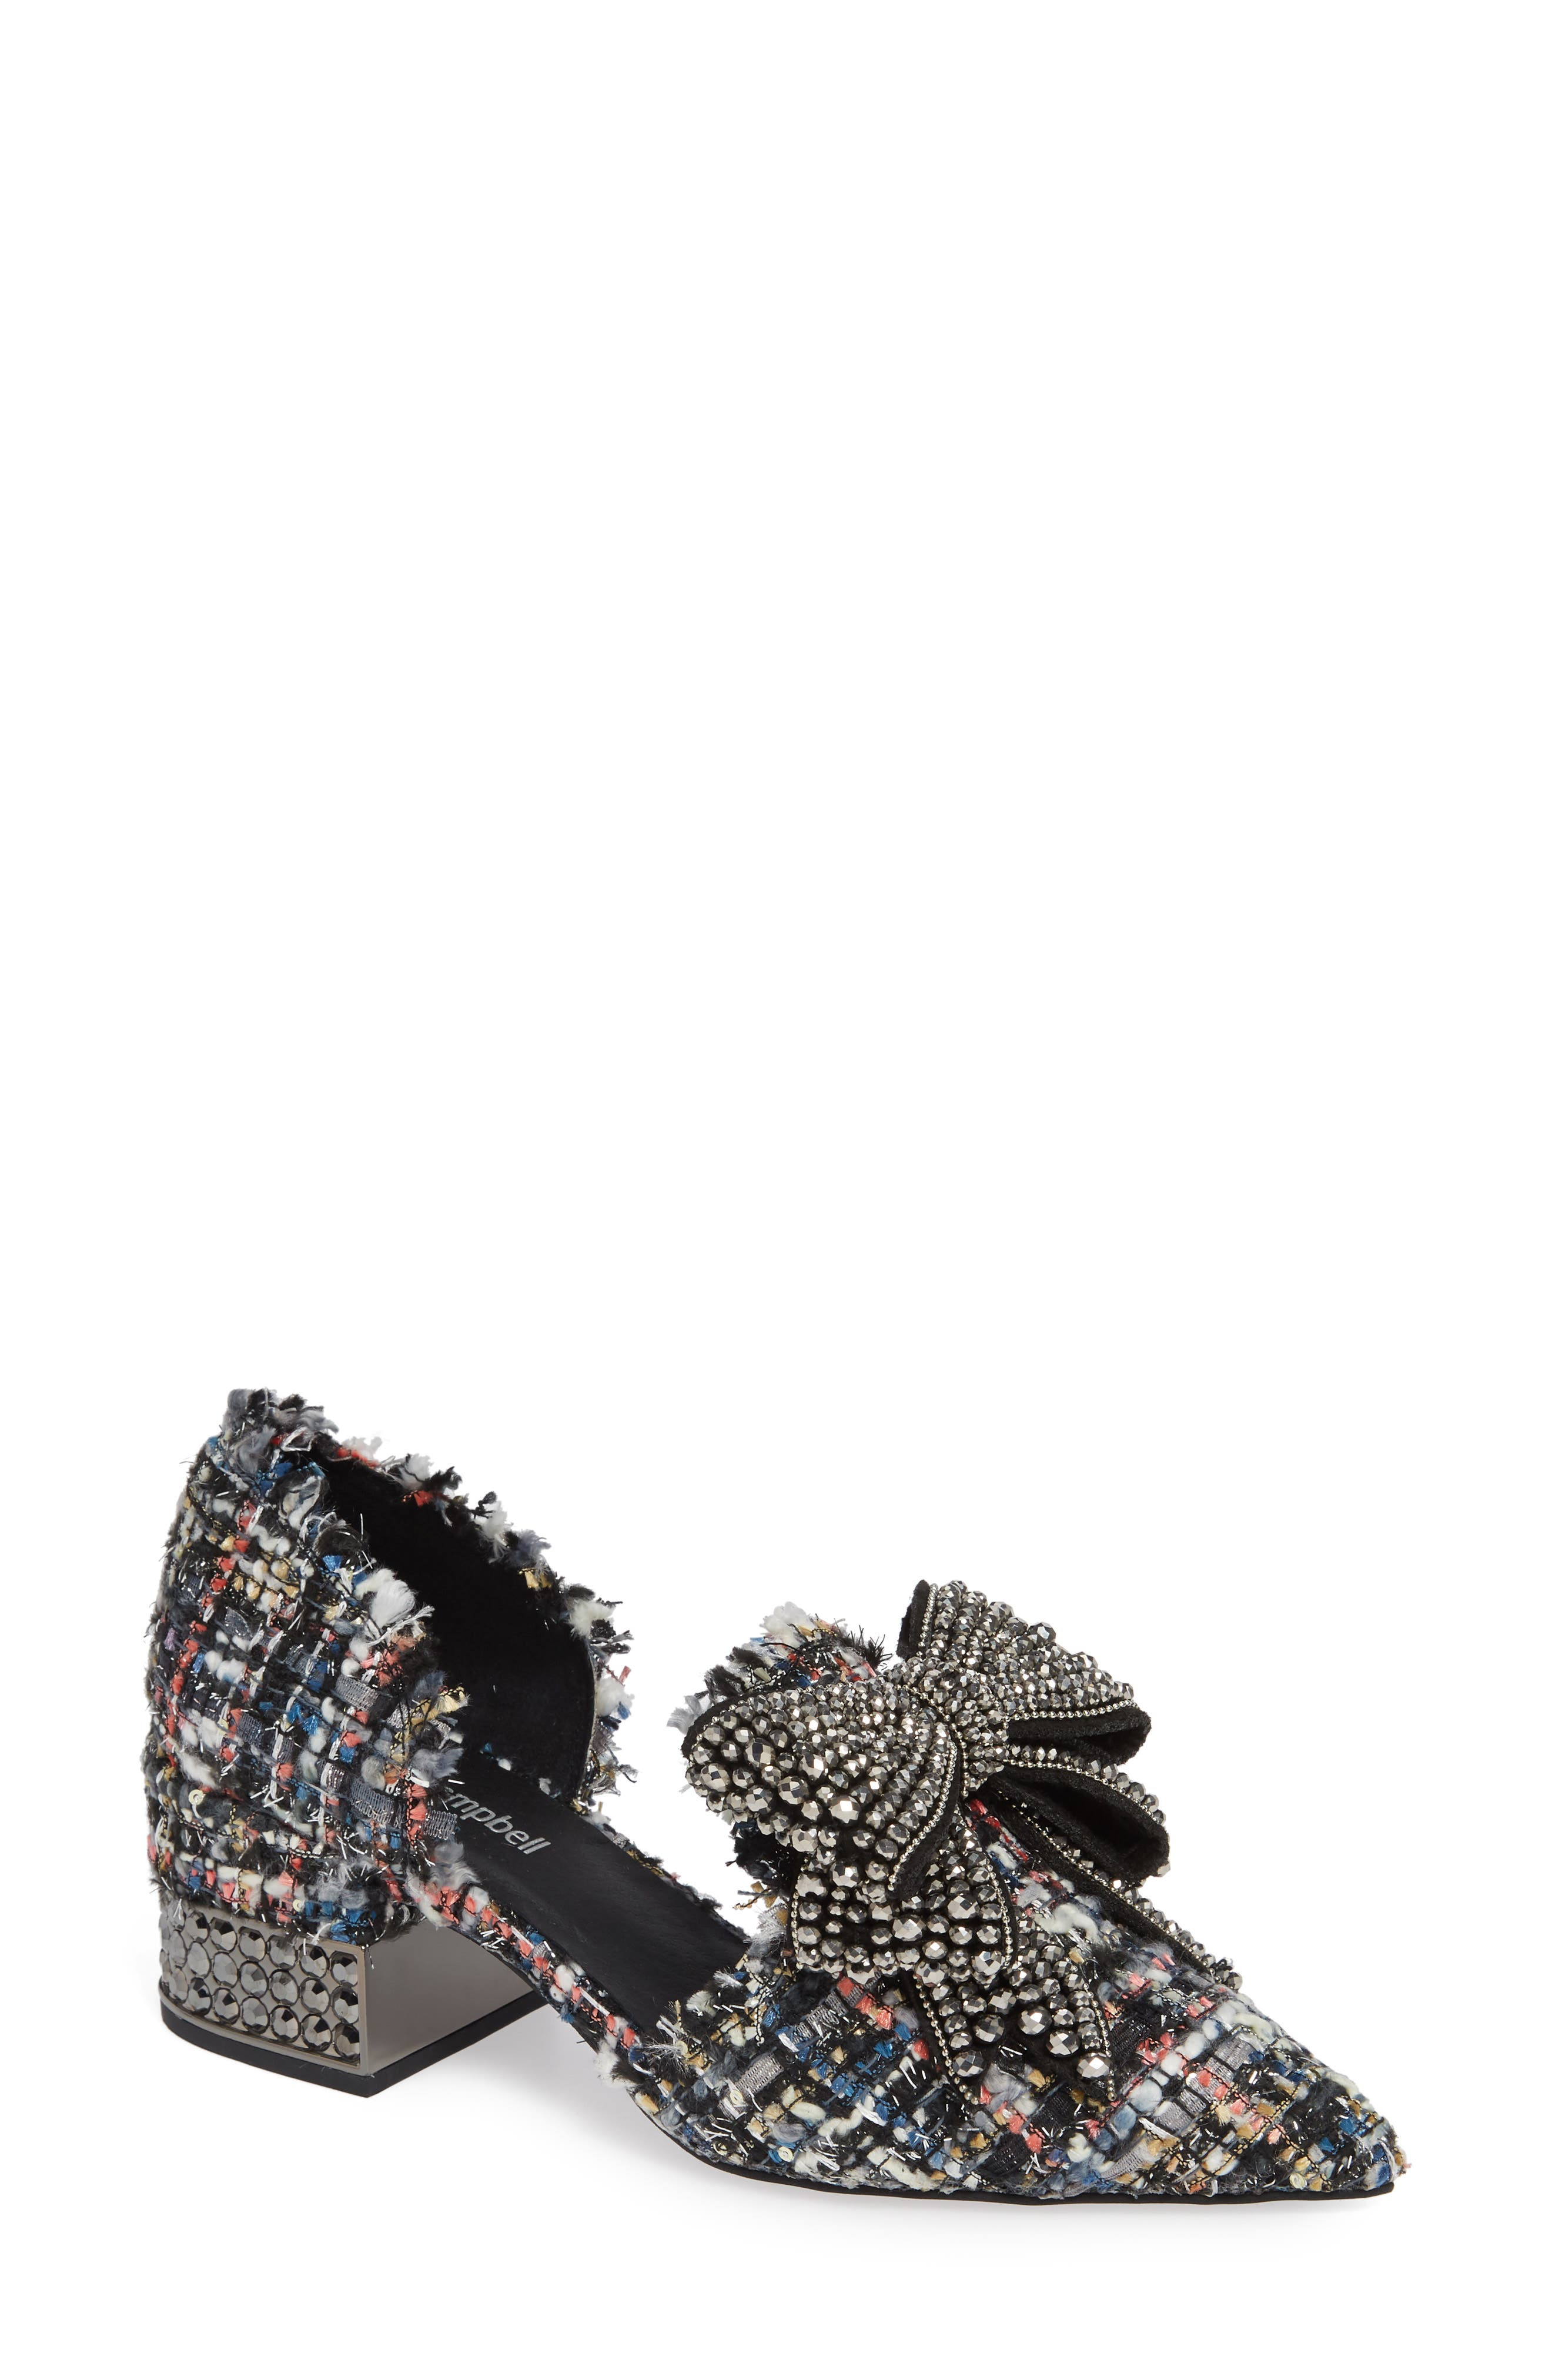 Valenti Embellished Bow Loafer,                             Main thumbnail 1, color,                             Black Multi Tweed Pewter